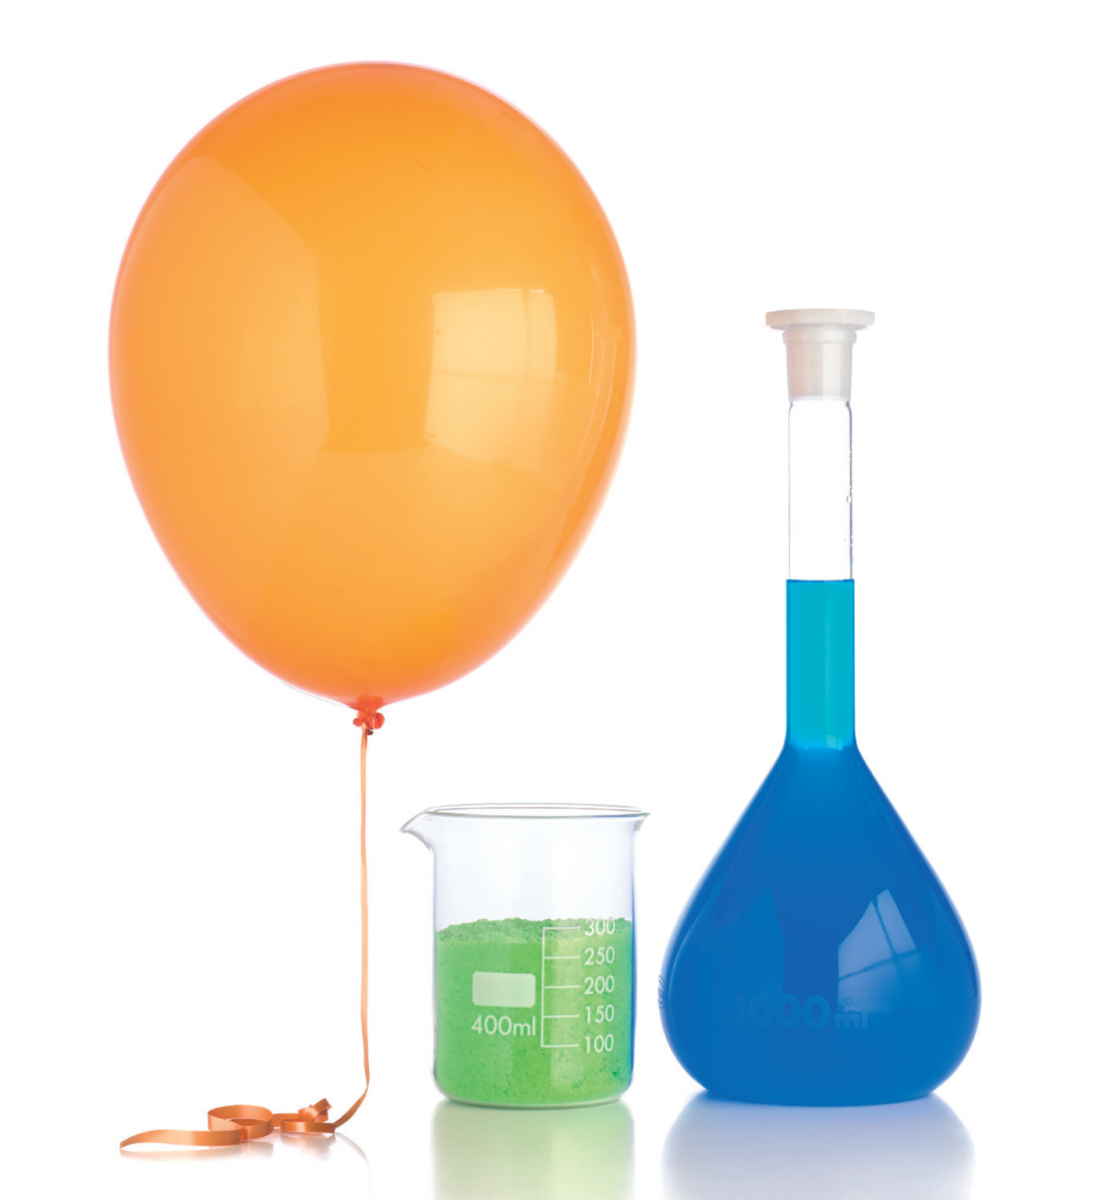 A balloon, a flask and a beaker, each containing one mole of a substance. The balloon contains one mole of a gas, the beaker one mole of solid nickel (II) chloride, and the flask one mole of copper (II) sulfate in one litre of water (a one-molar solution).